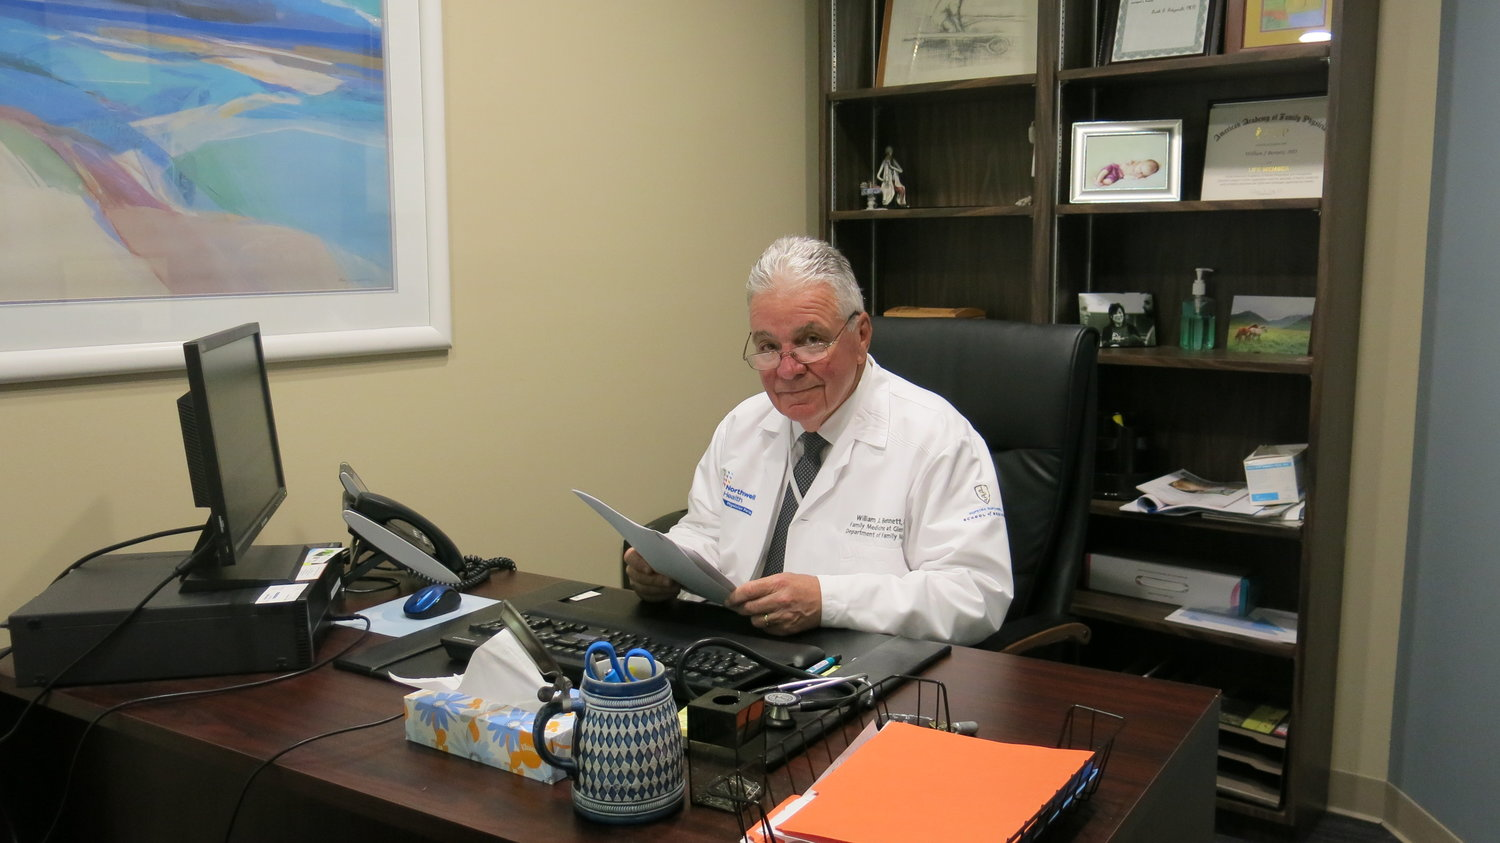 Dr. William Bennett has had an office in Oyster Bay for 40 years. He continues to enjoy the challenges of medicine and a changing healthcare system.